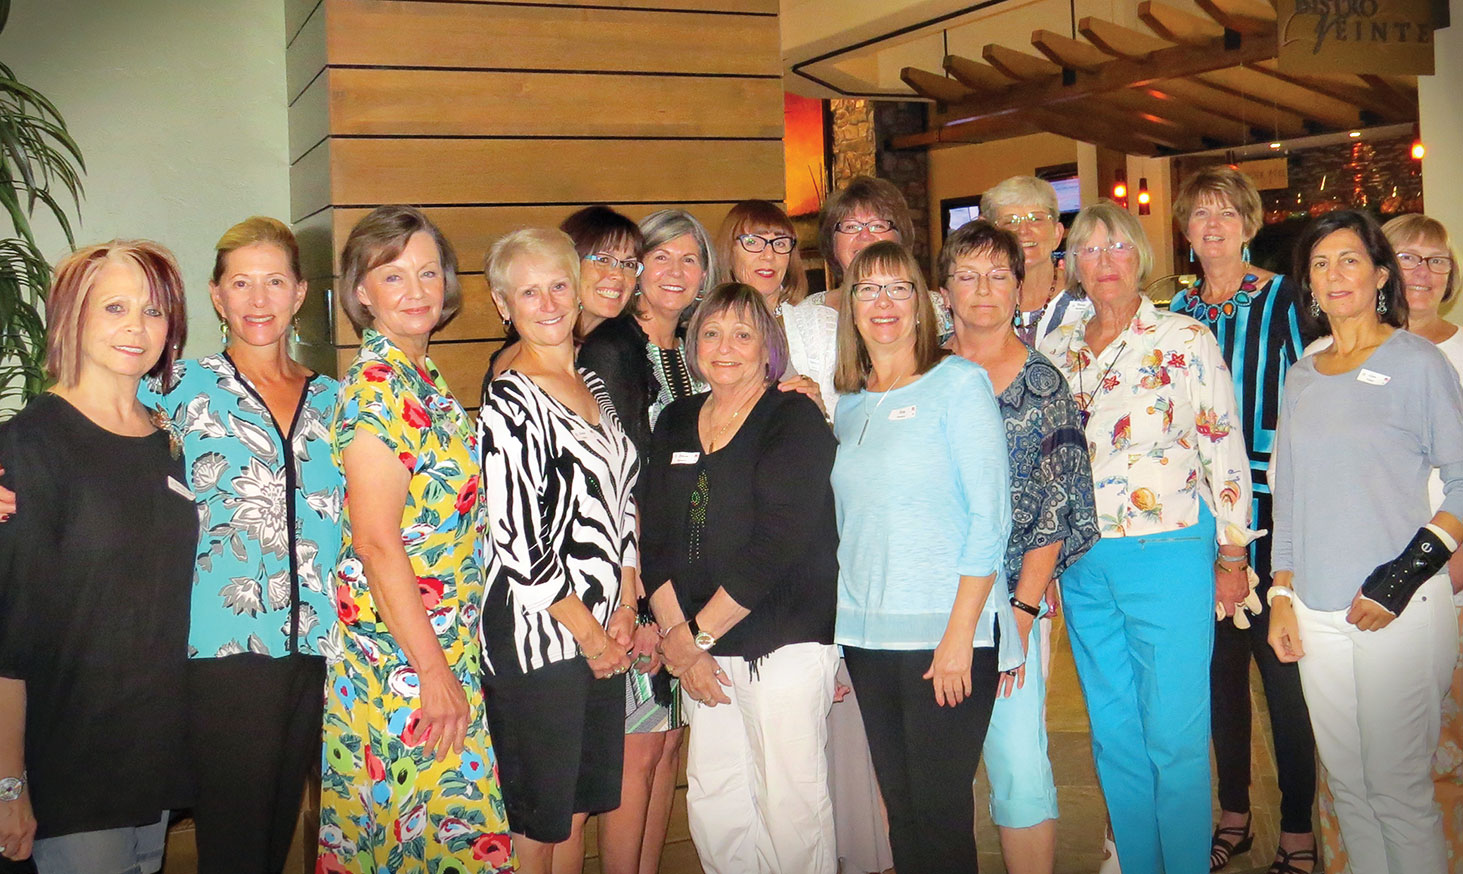 Birthday Club celebrants, left to right: Florence Messer, Marlene Diskin, Kerstin Seifert, Linda Hart, Corine Sturdivant, Sandy Noble, Roberta Bowers, Raeone Gilison, Nancy Galant, Betty Pearce, Susan Engbretson, Wendy McMillan, Betty Johnson, Mary Ann Nemecek, Lynn Fidler and Cyndie Grover.